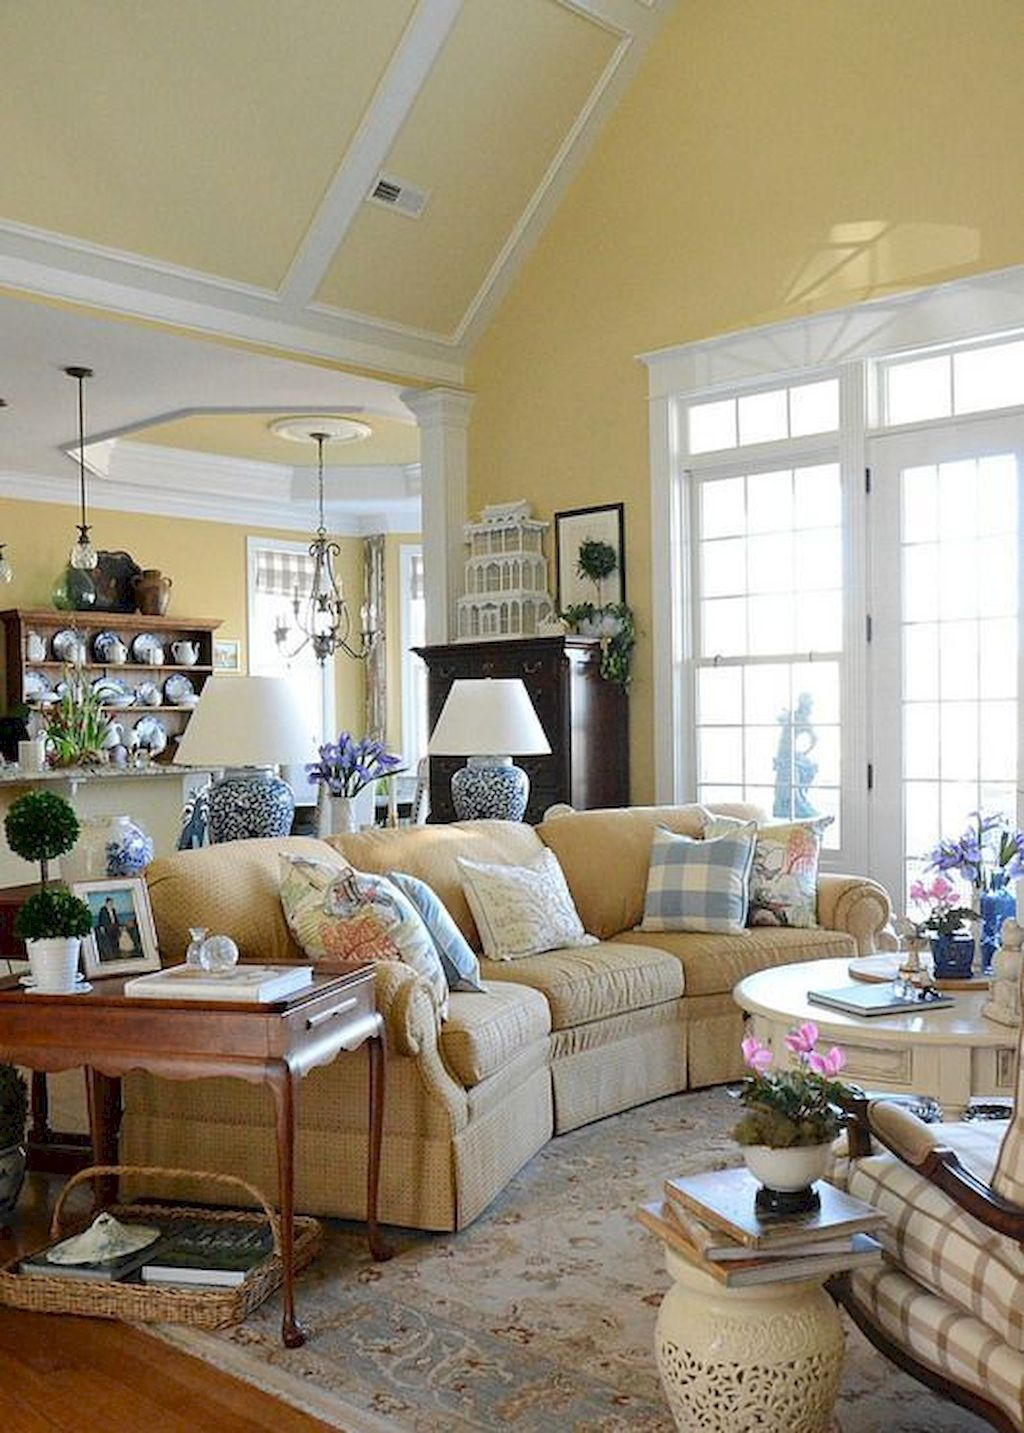 57 Gorgeous French Country Living Room Decor Ideas French Country Living Room Yellow Living Room Country Living Room